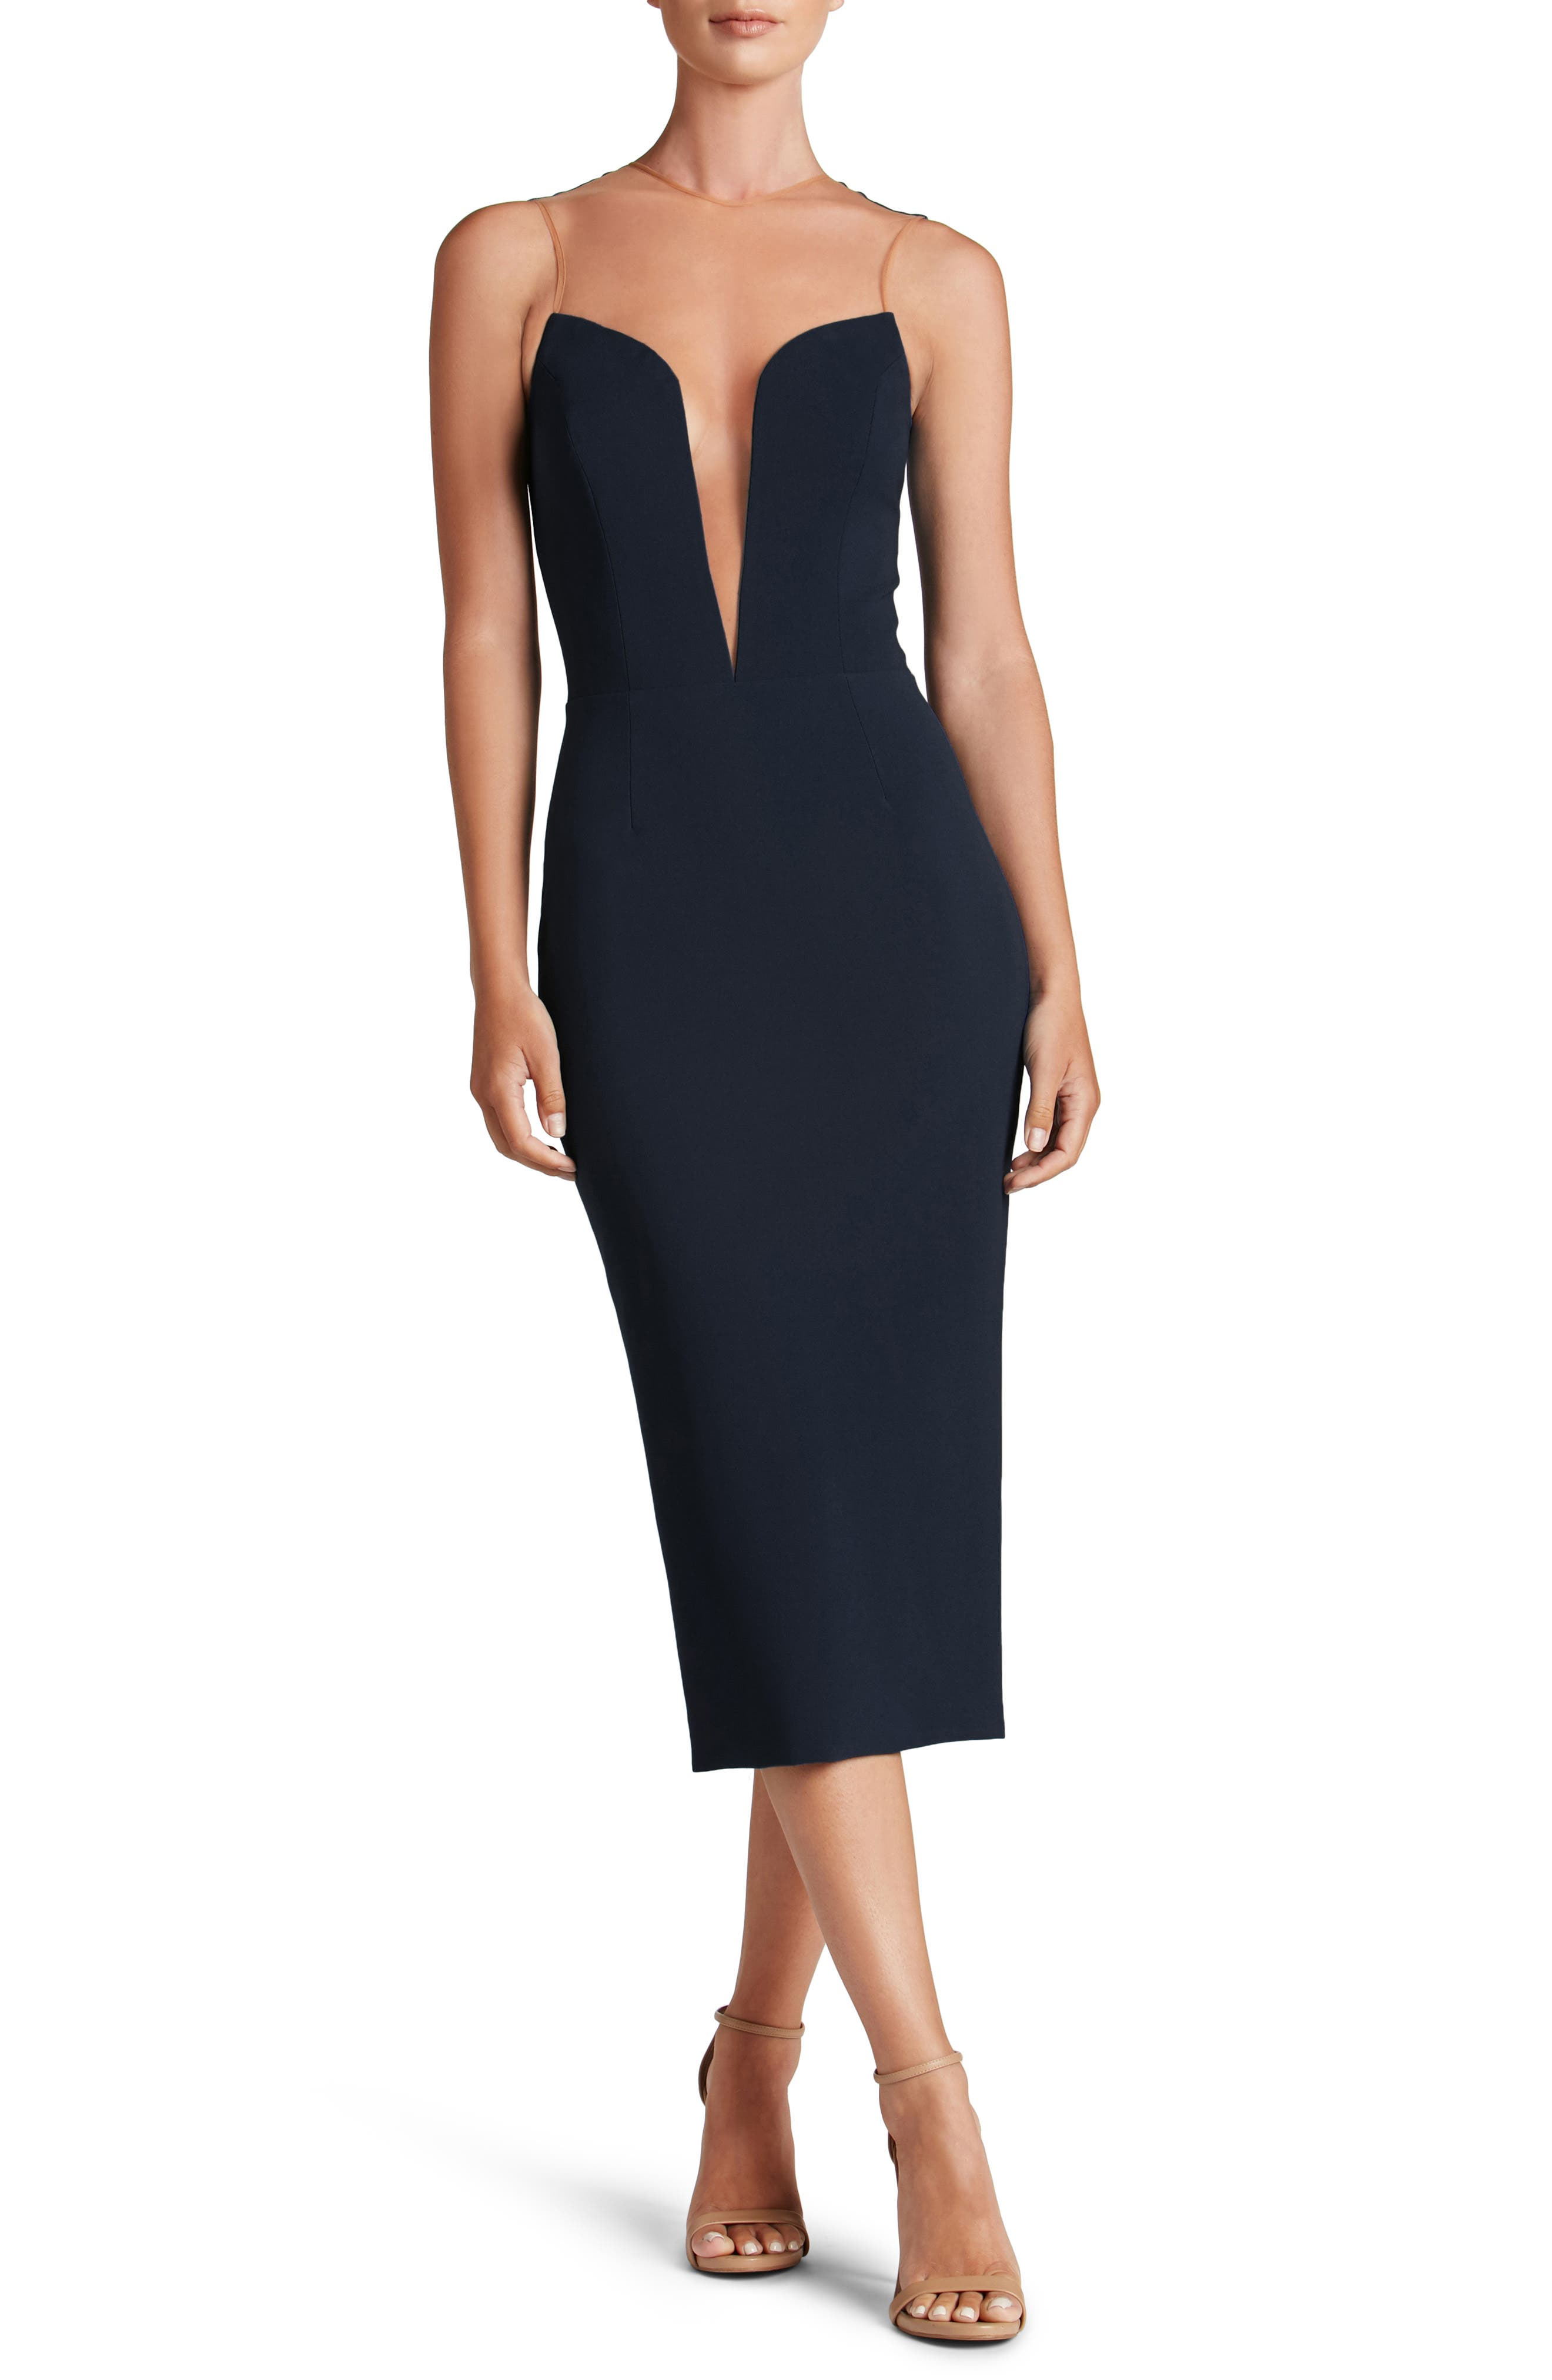 Helen Plunge Neck Midi Dress,                             Main thumbnail 1, color,                             Midnight Blue